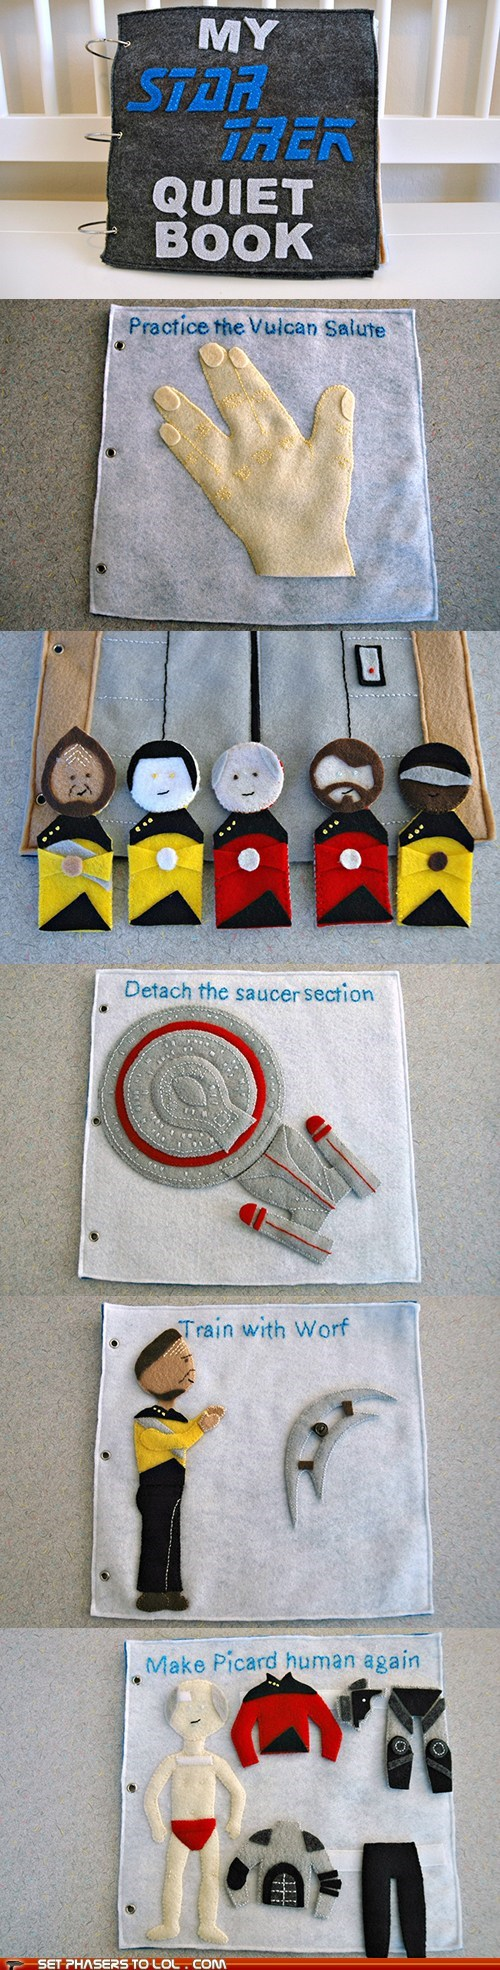 Babies,best of the week,childrens book,pattern,quiet book,Star Trek,TNG,Worf